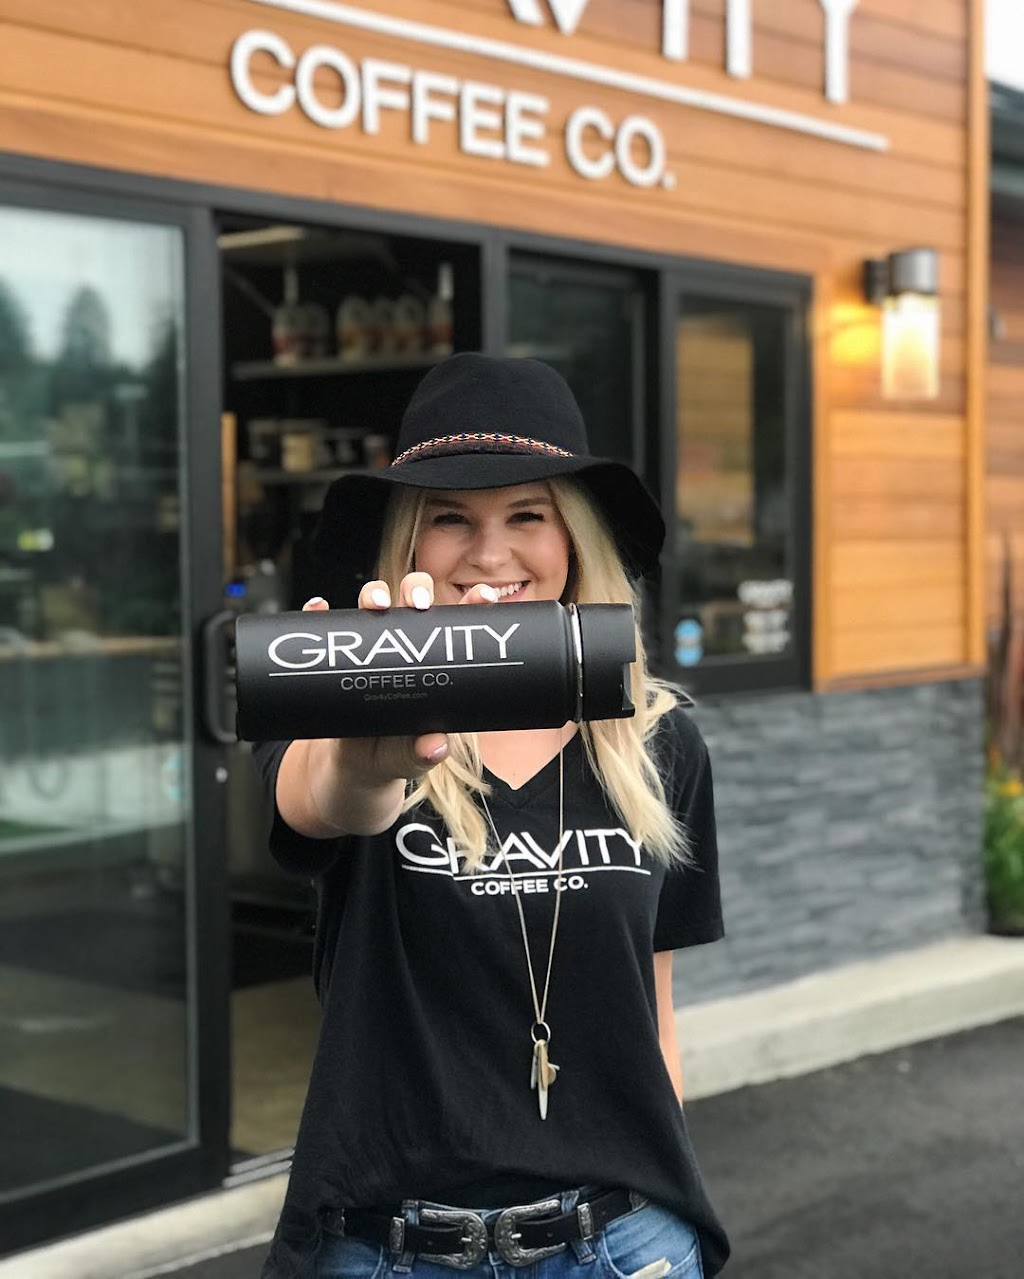 Gravity Coffee - Federal Way South - cafe  | Photo 10 of 10 | Address: 35007 Enchanted Pkwy S, Federal Way, WA 98003, USA | Phone: (253) 447-8740